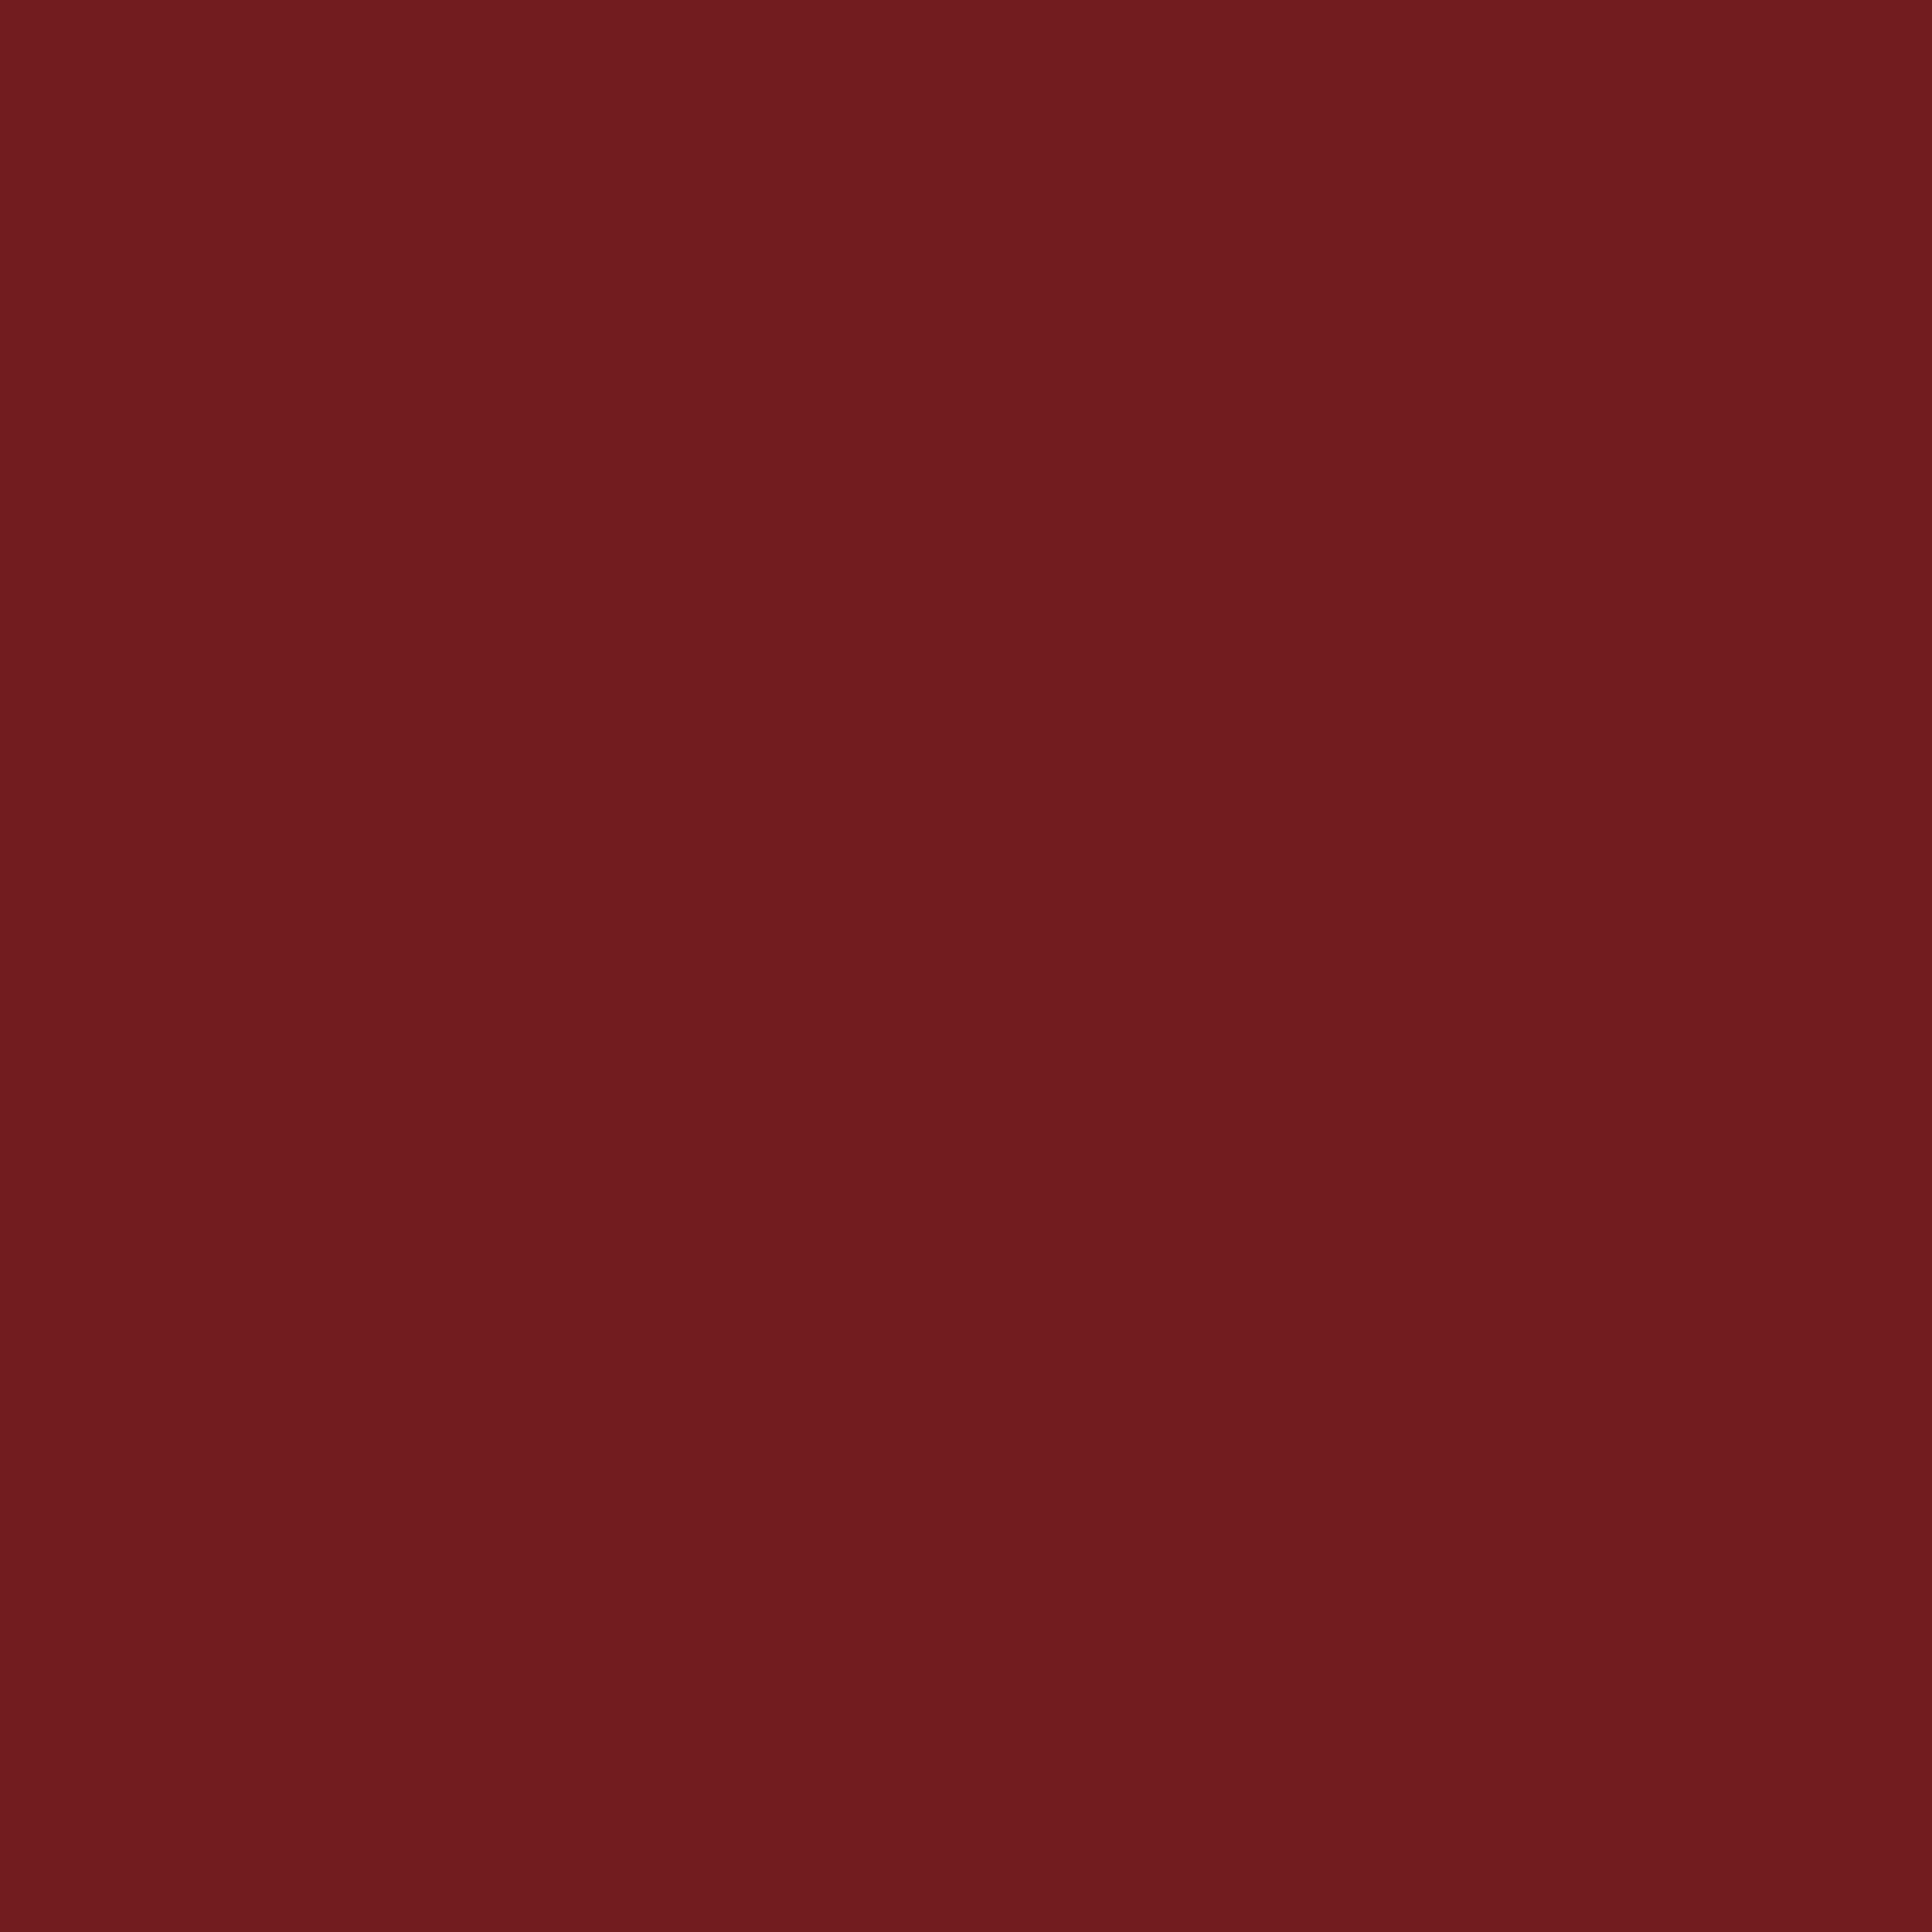 3600x3600 Persian Plum Solid Color Background 3600x3600